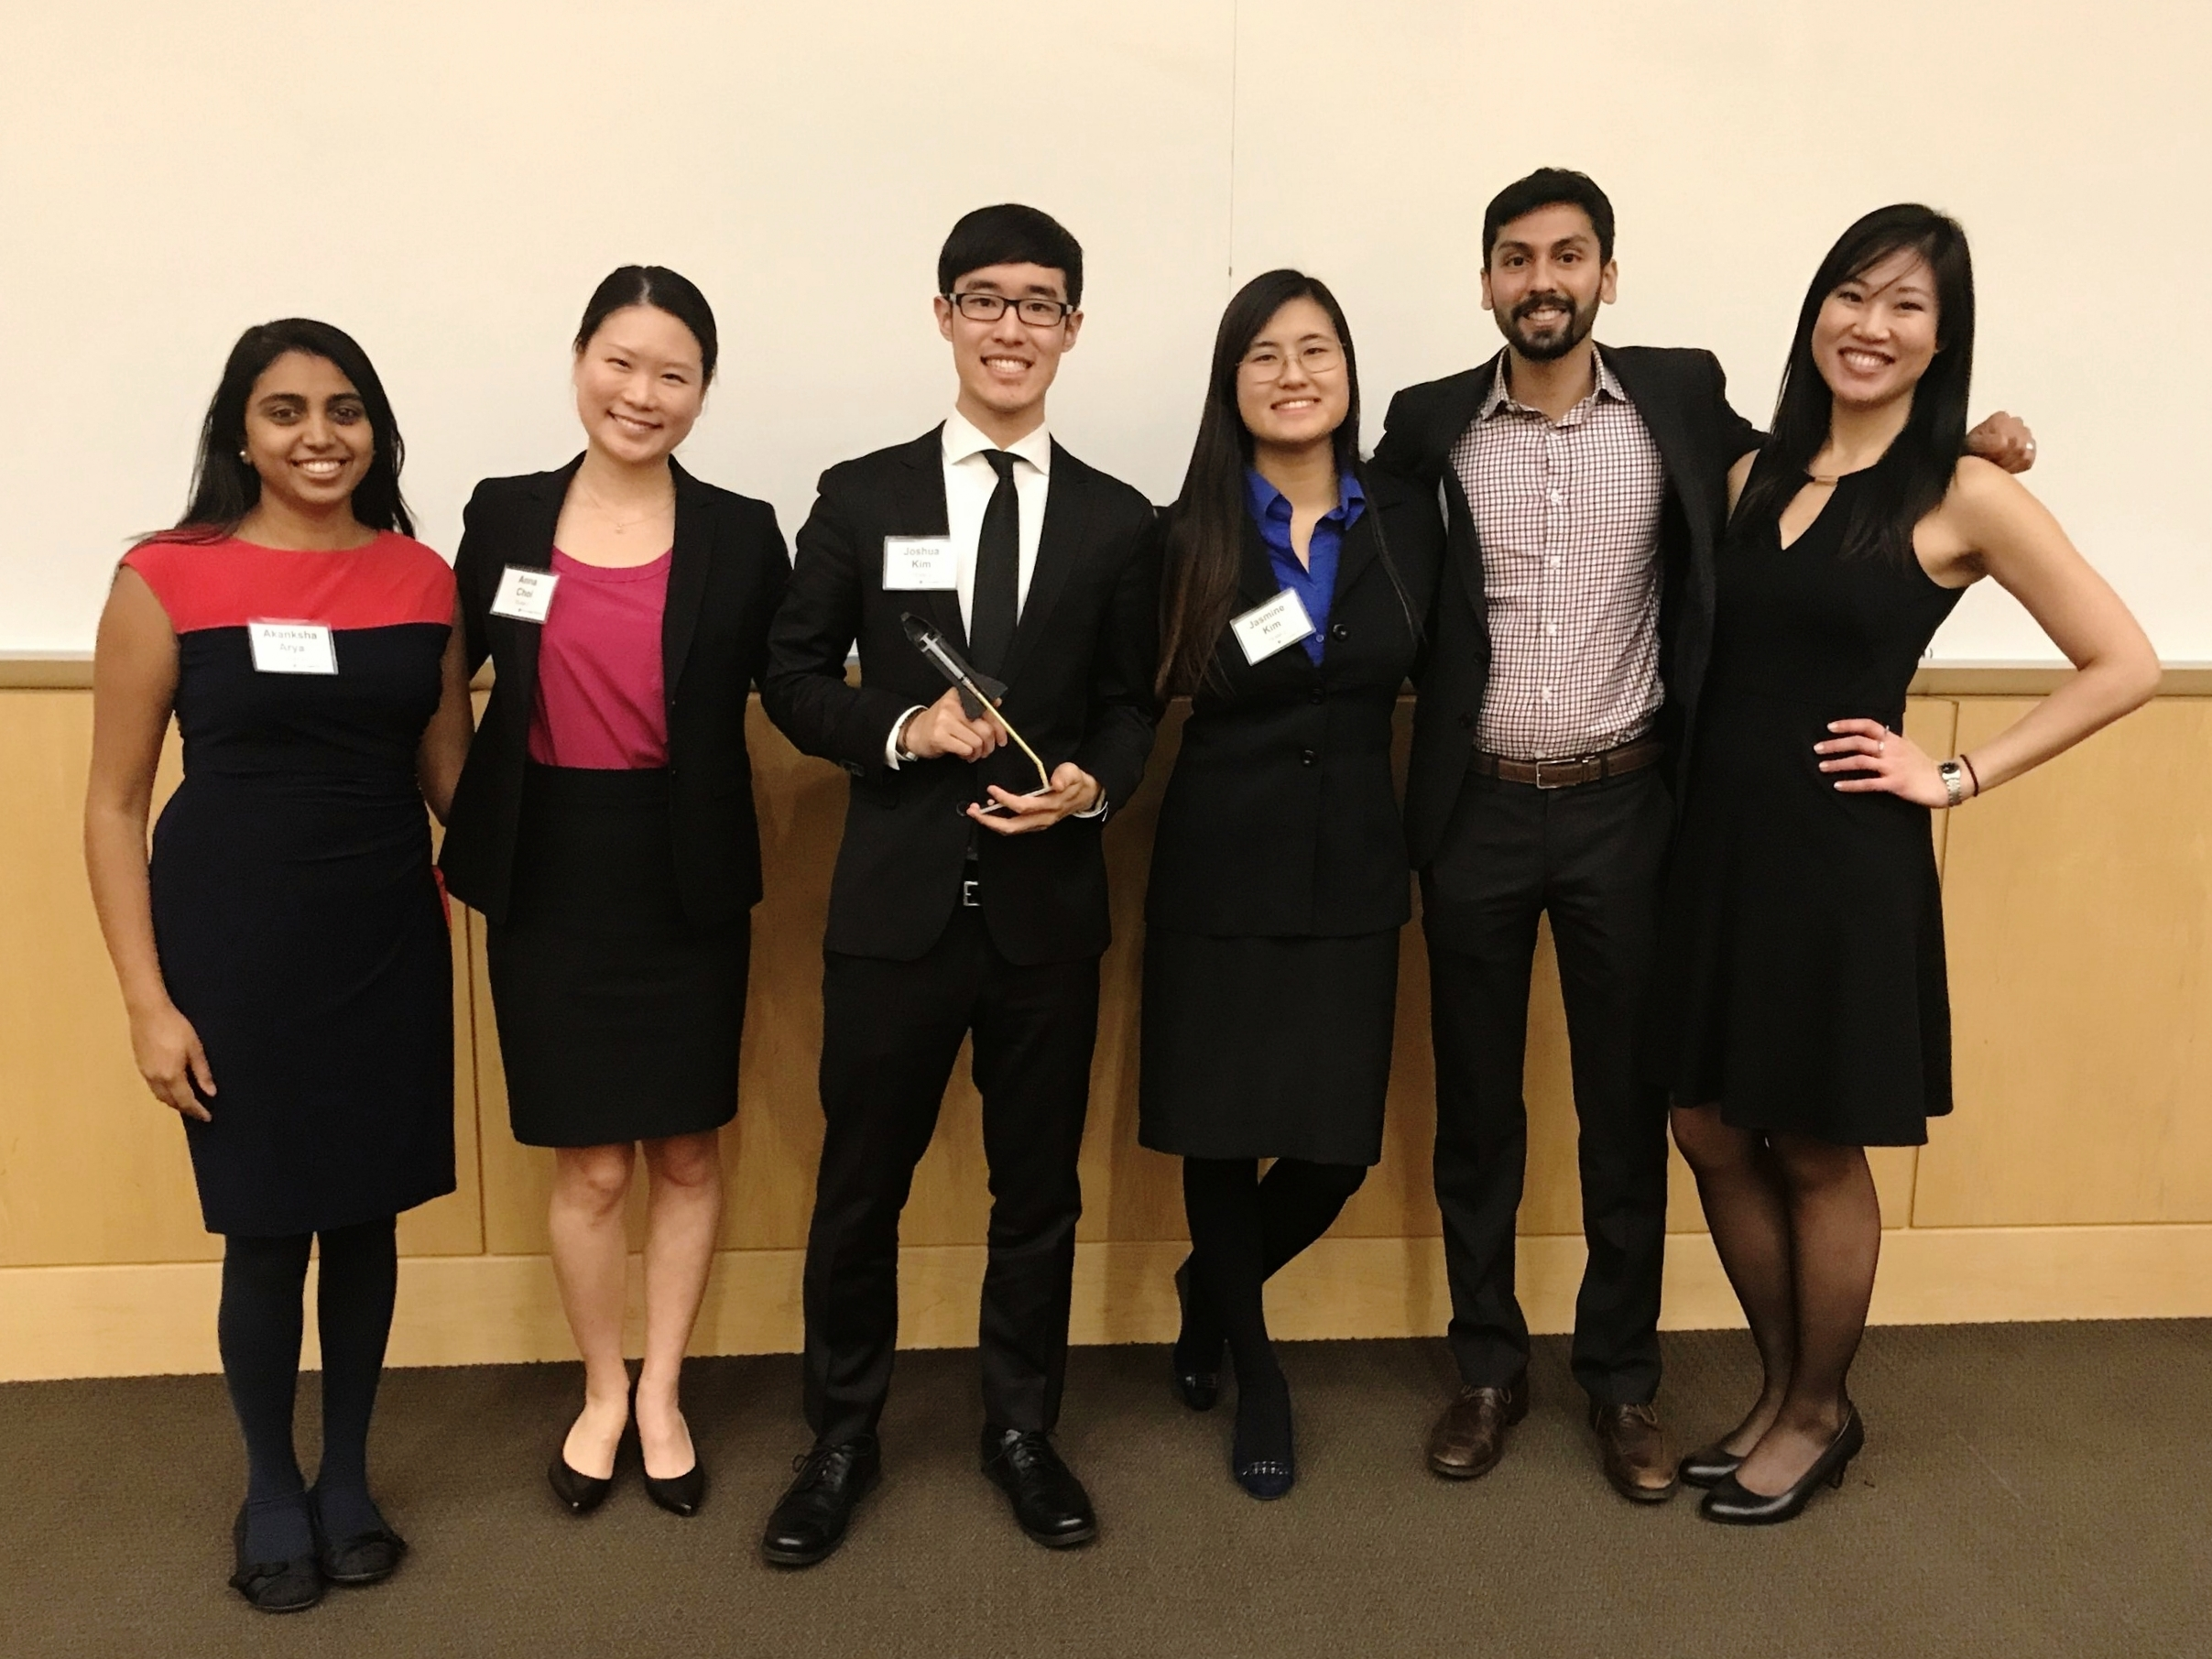 Team Tajjan, Creators of Jetter  Left to right:  Akanksha Arya  (NU Business),  Anna Choi  (NU Law),  Joshua Kim  (NU Engineering),  Jasmine Kim  (NU Engineering),  Nish Rastogi  (NU Business),  Tiffany Wen  (NU Medicine)